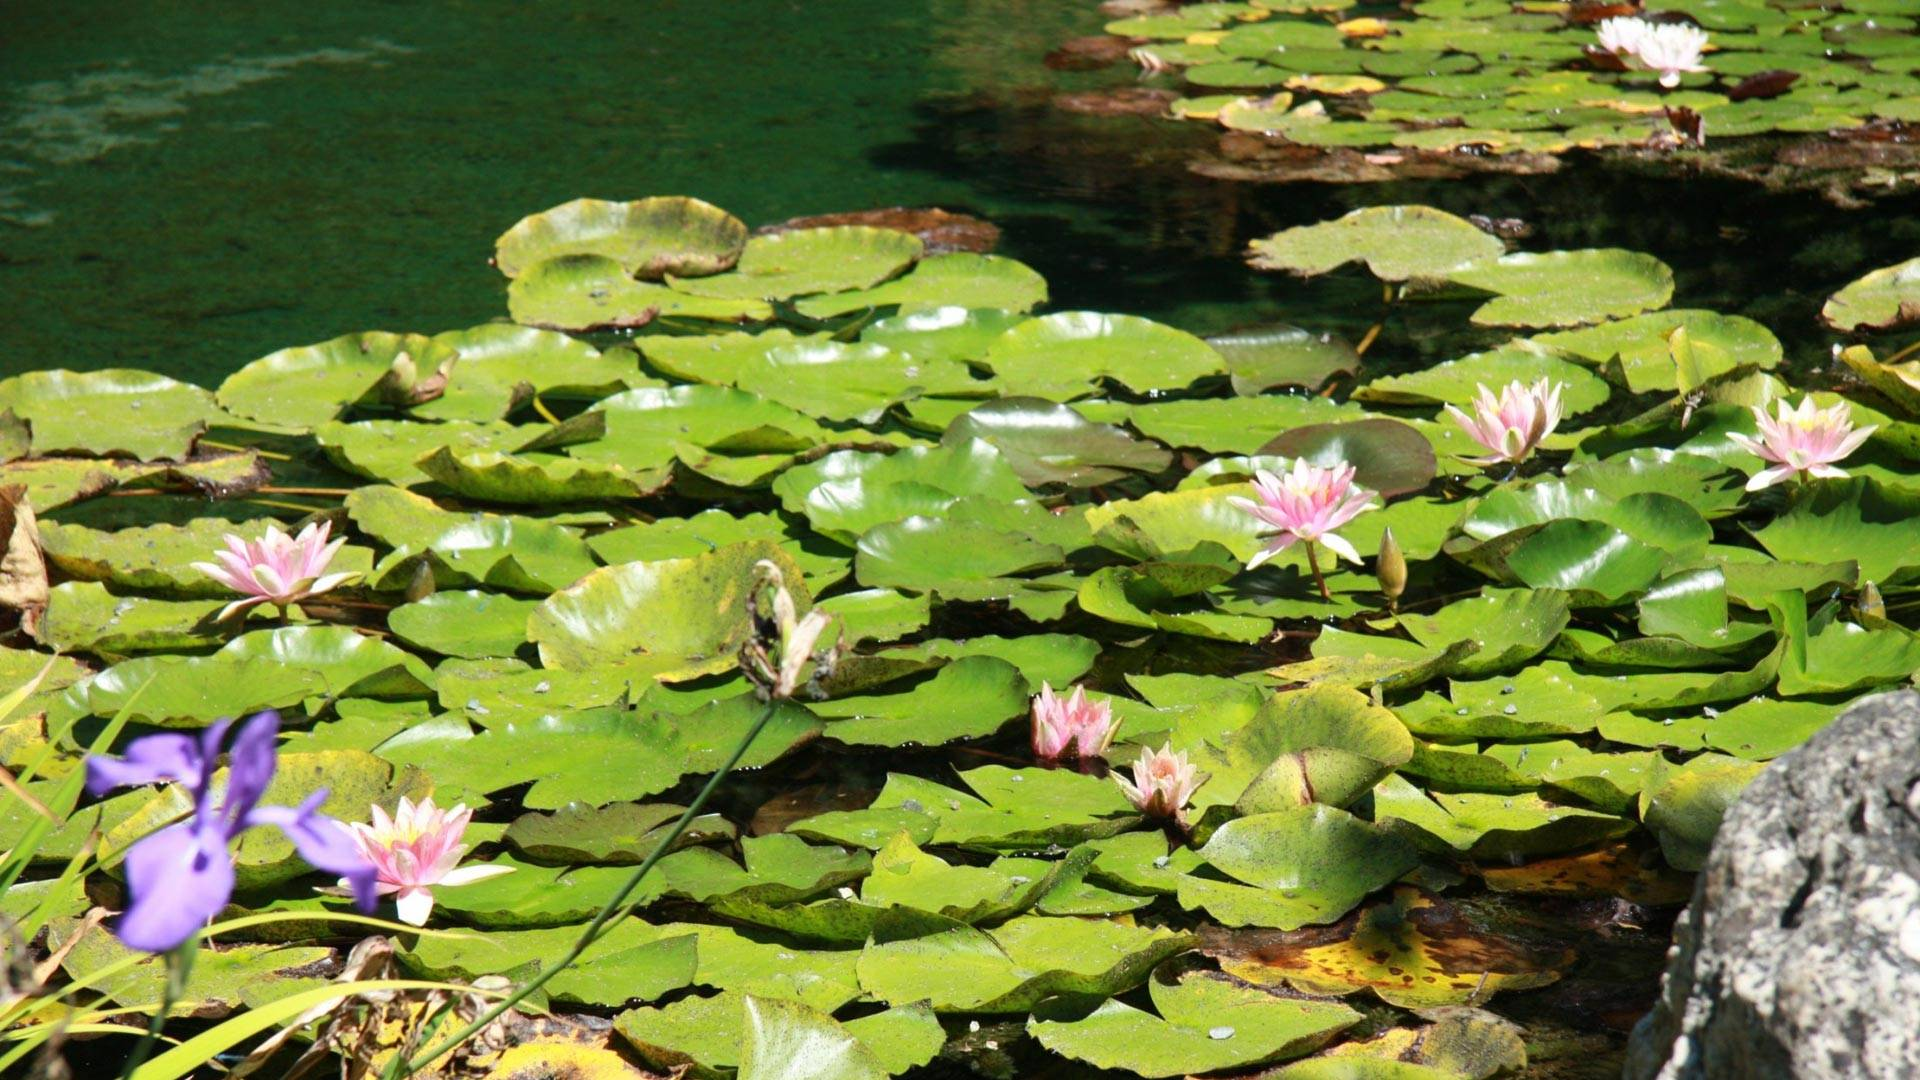 Water lilies in the Japanese Pool at UC Botanical Gardens.